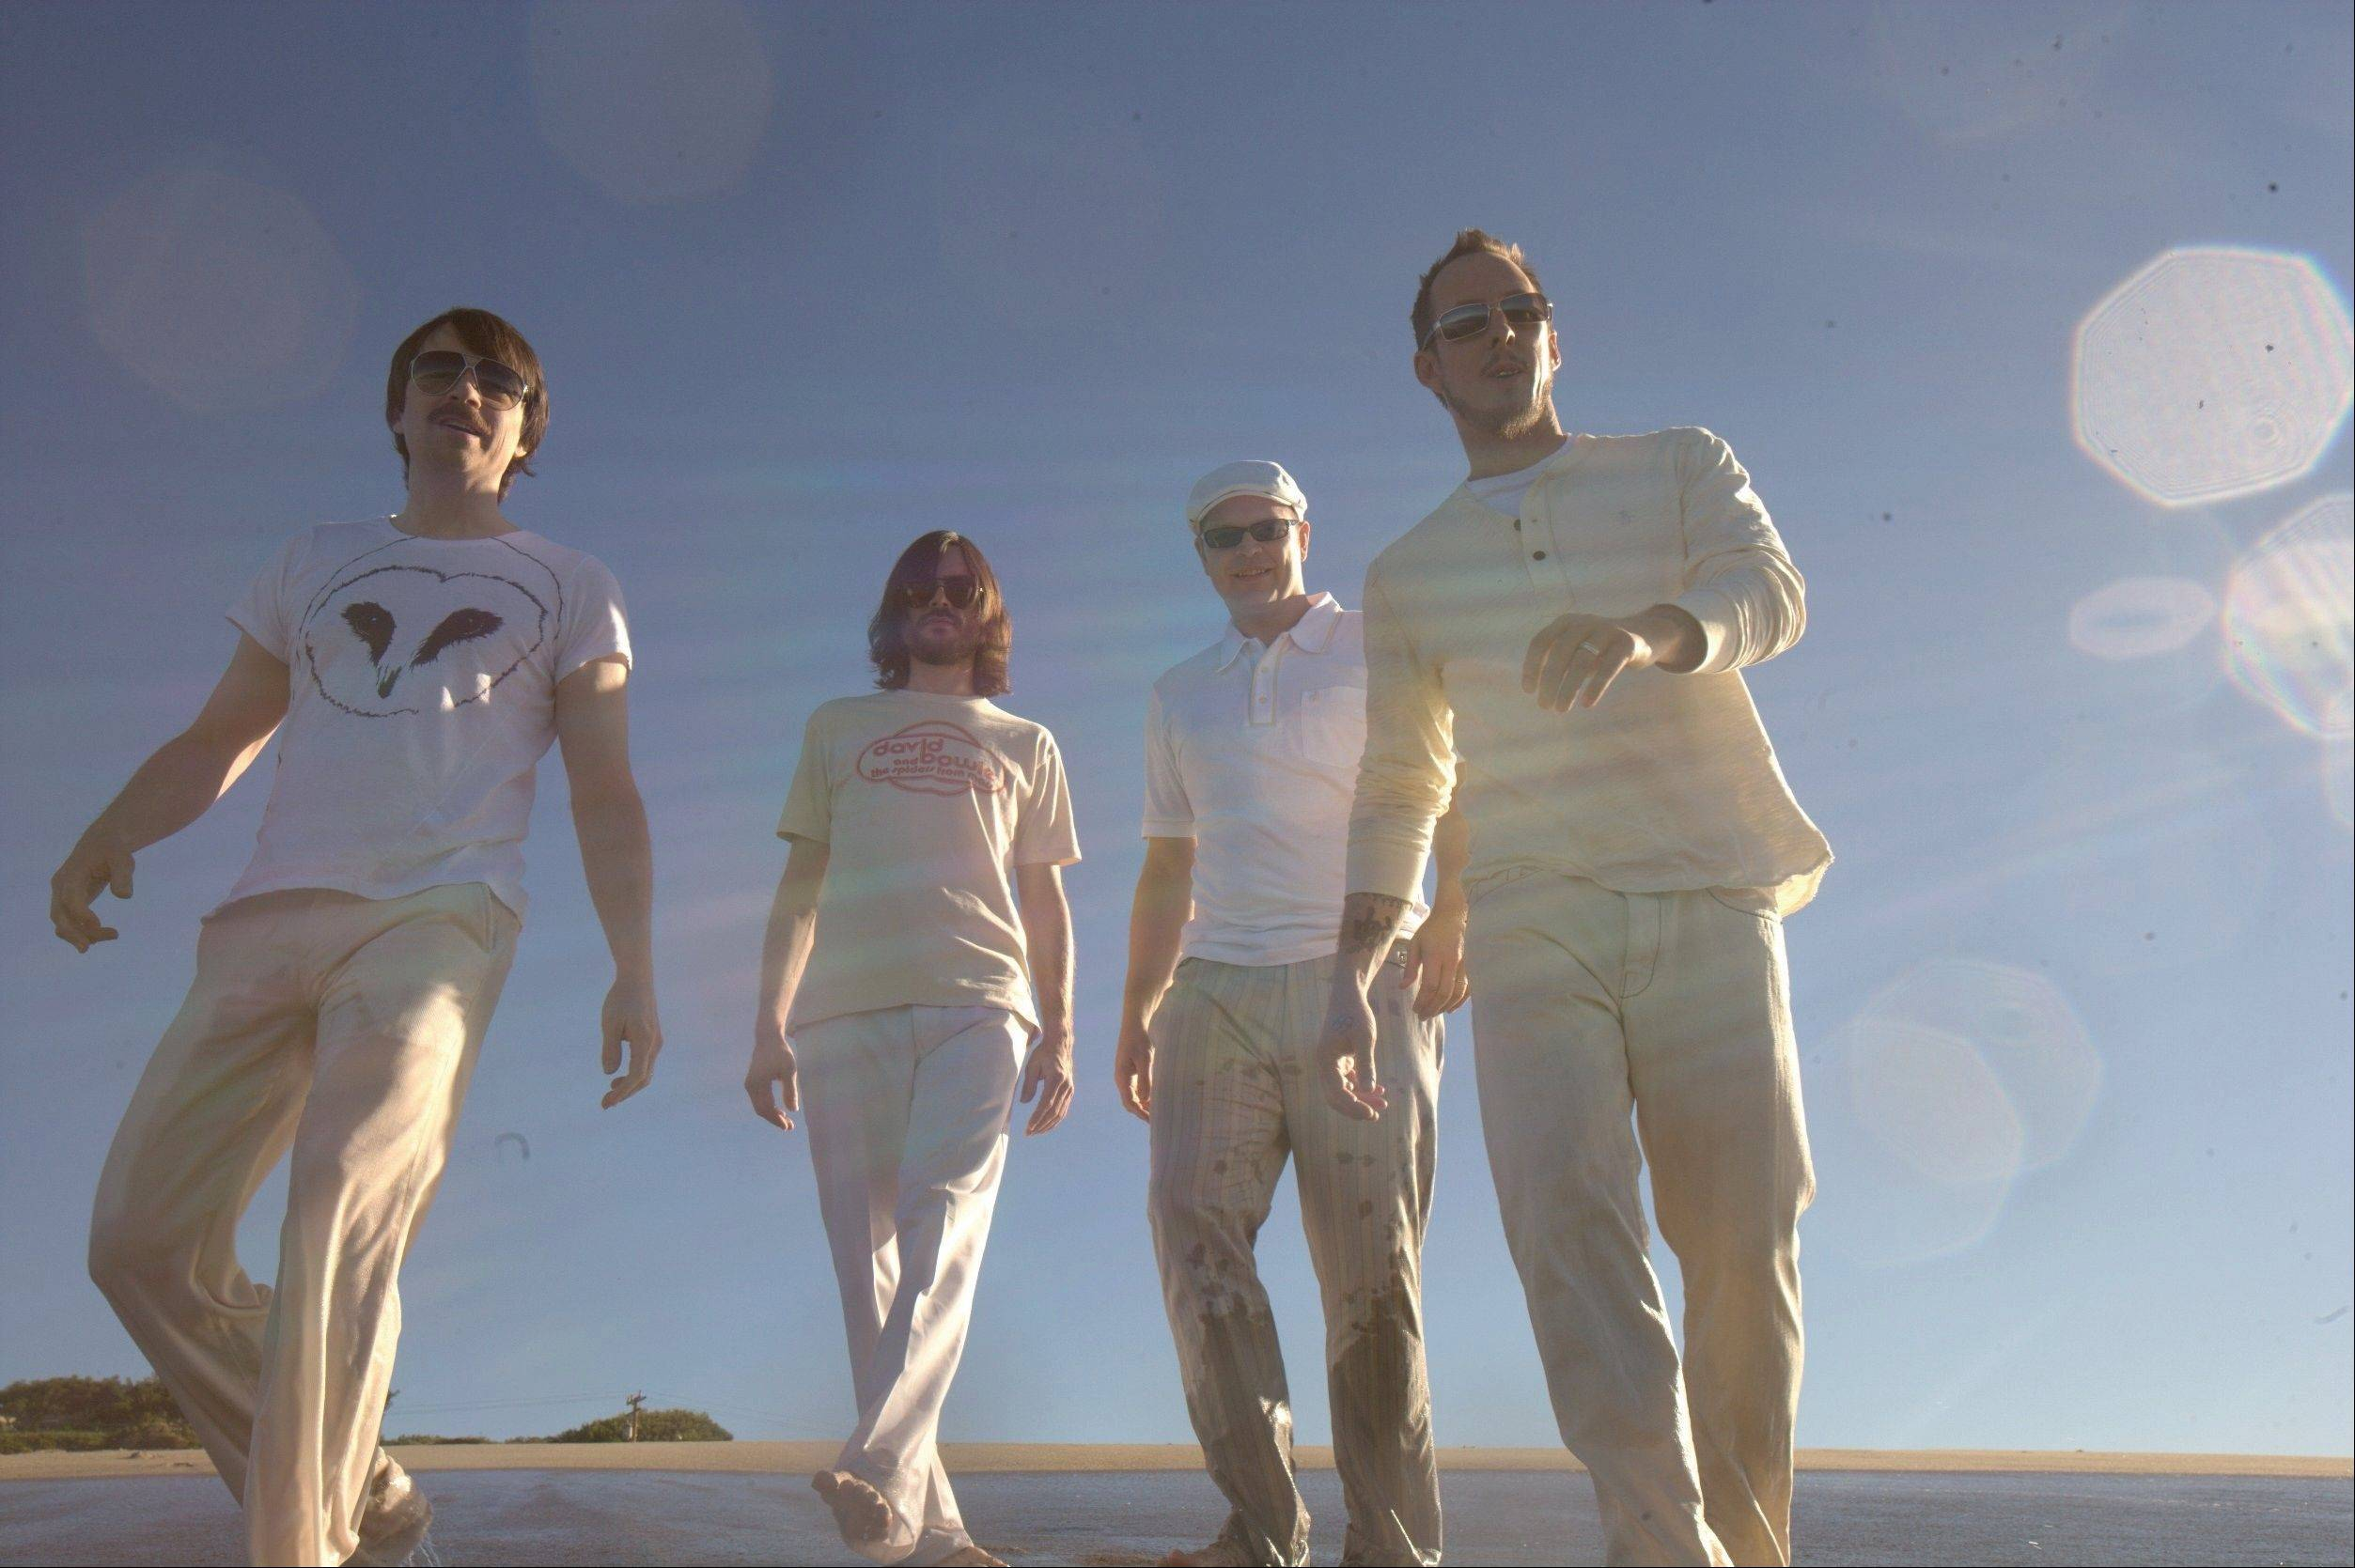 Alt-rock favorites Weezer will play a free concert June 22 at Woodfield Mall.